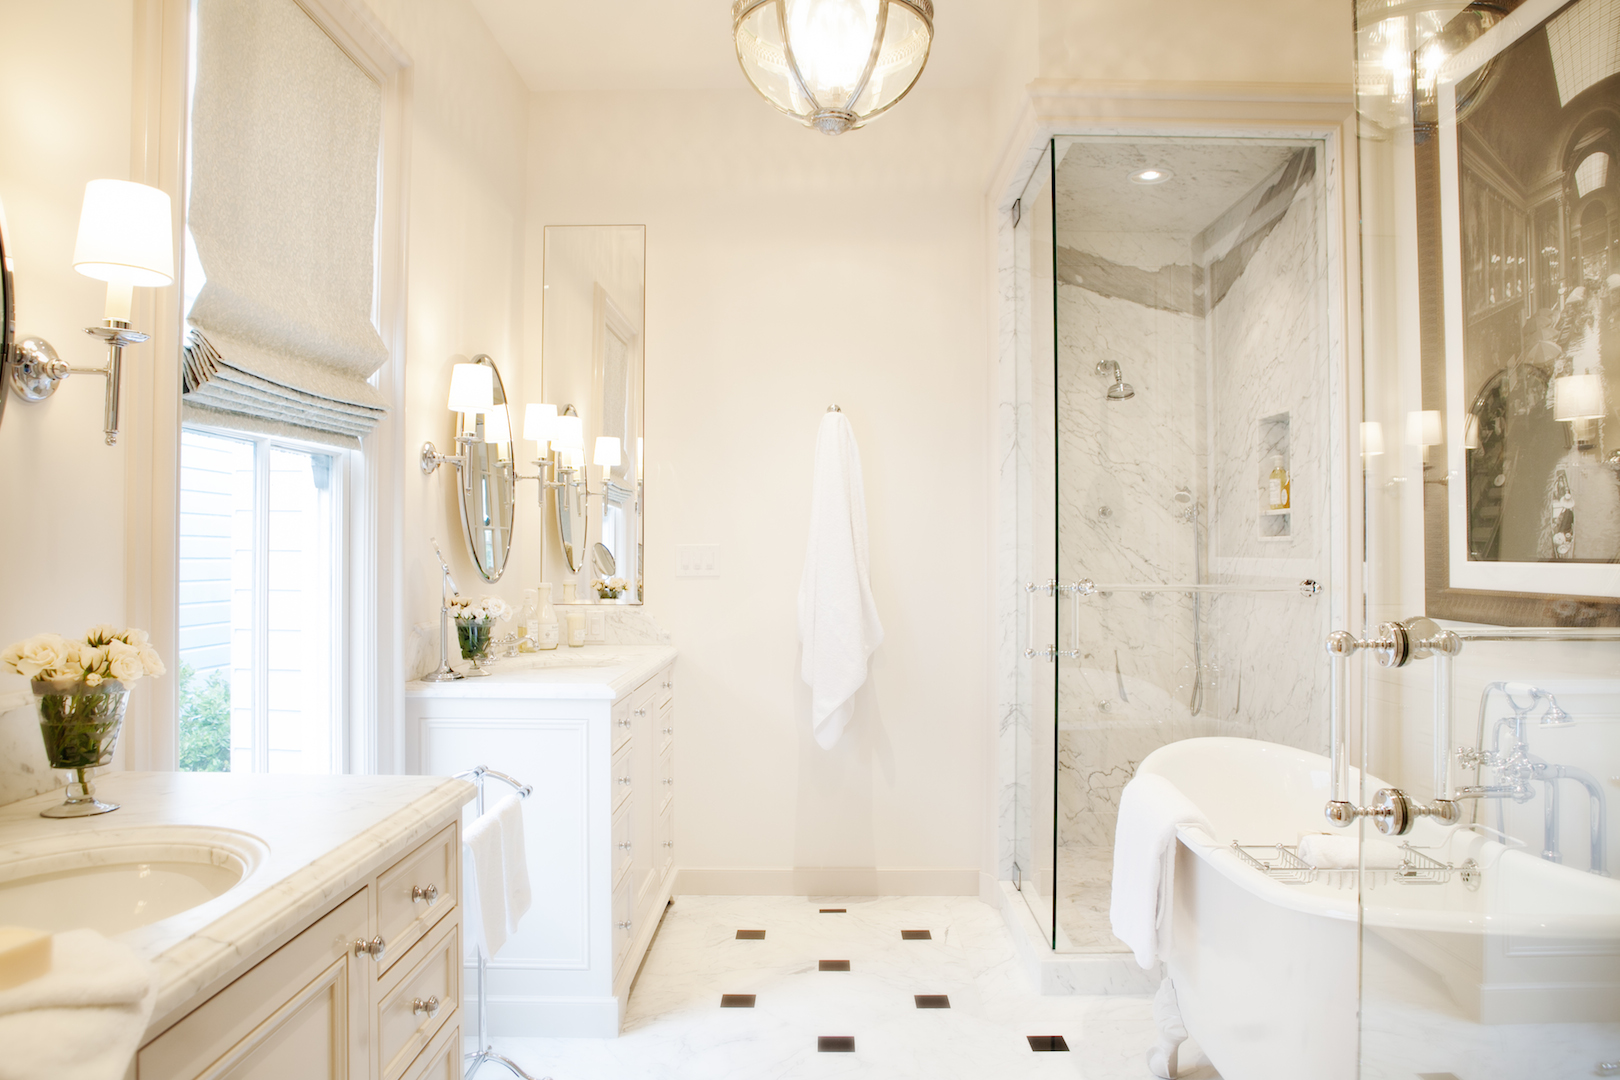 Top 10 Bathroom Renovation Tips - The LuxPad